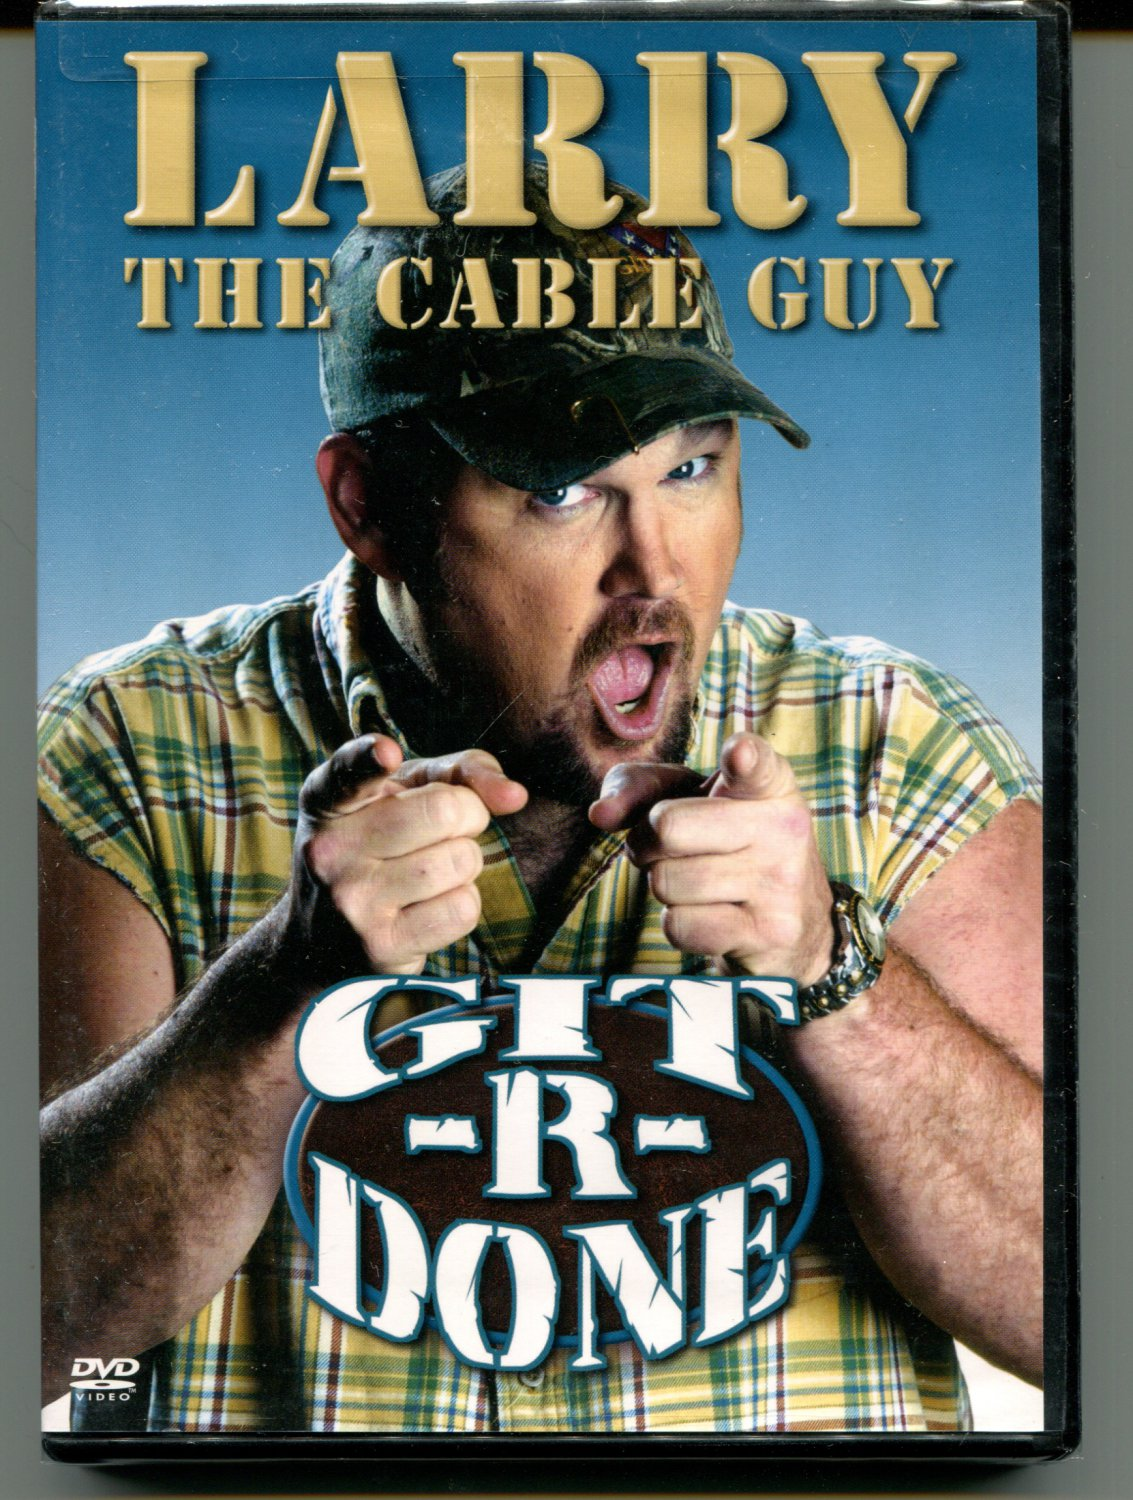 Larry The Cable Guy - Git-R-Done (2004)